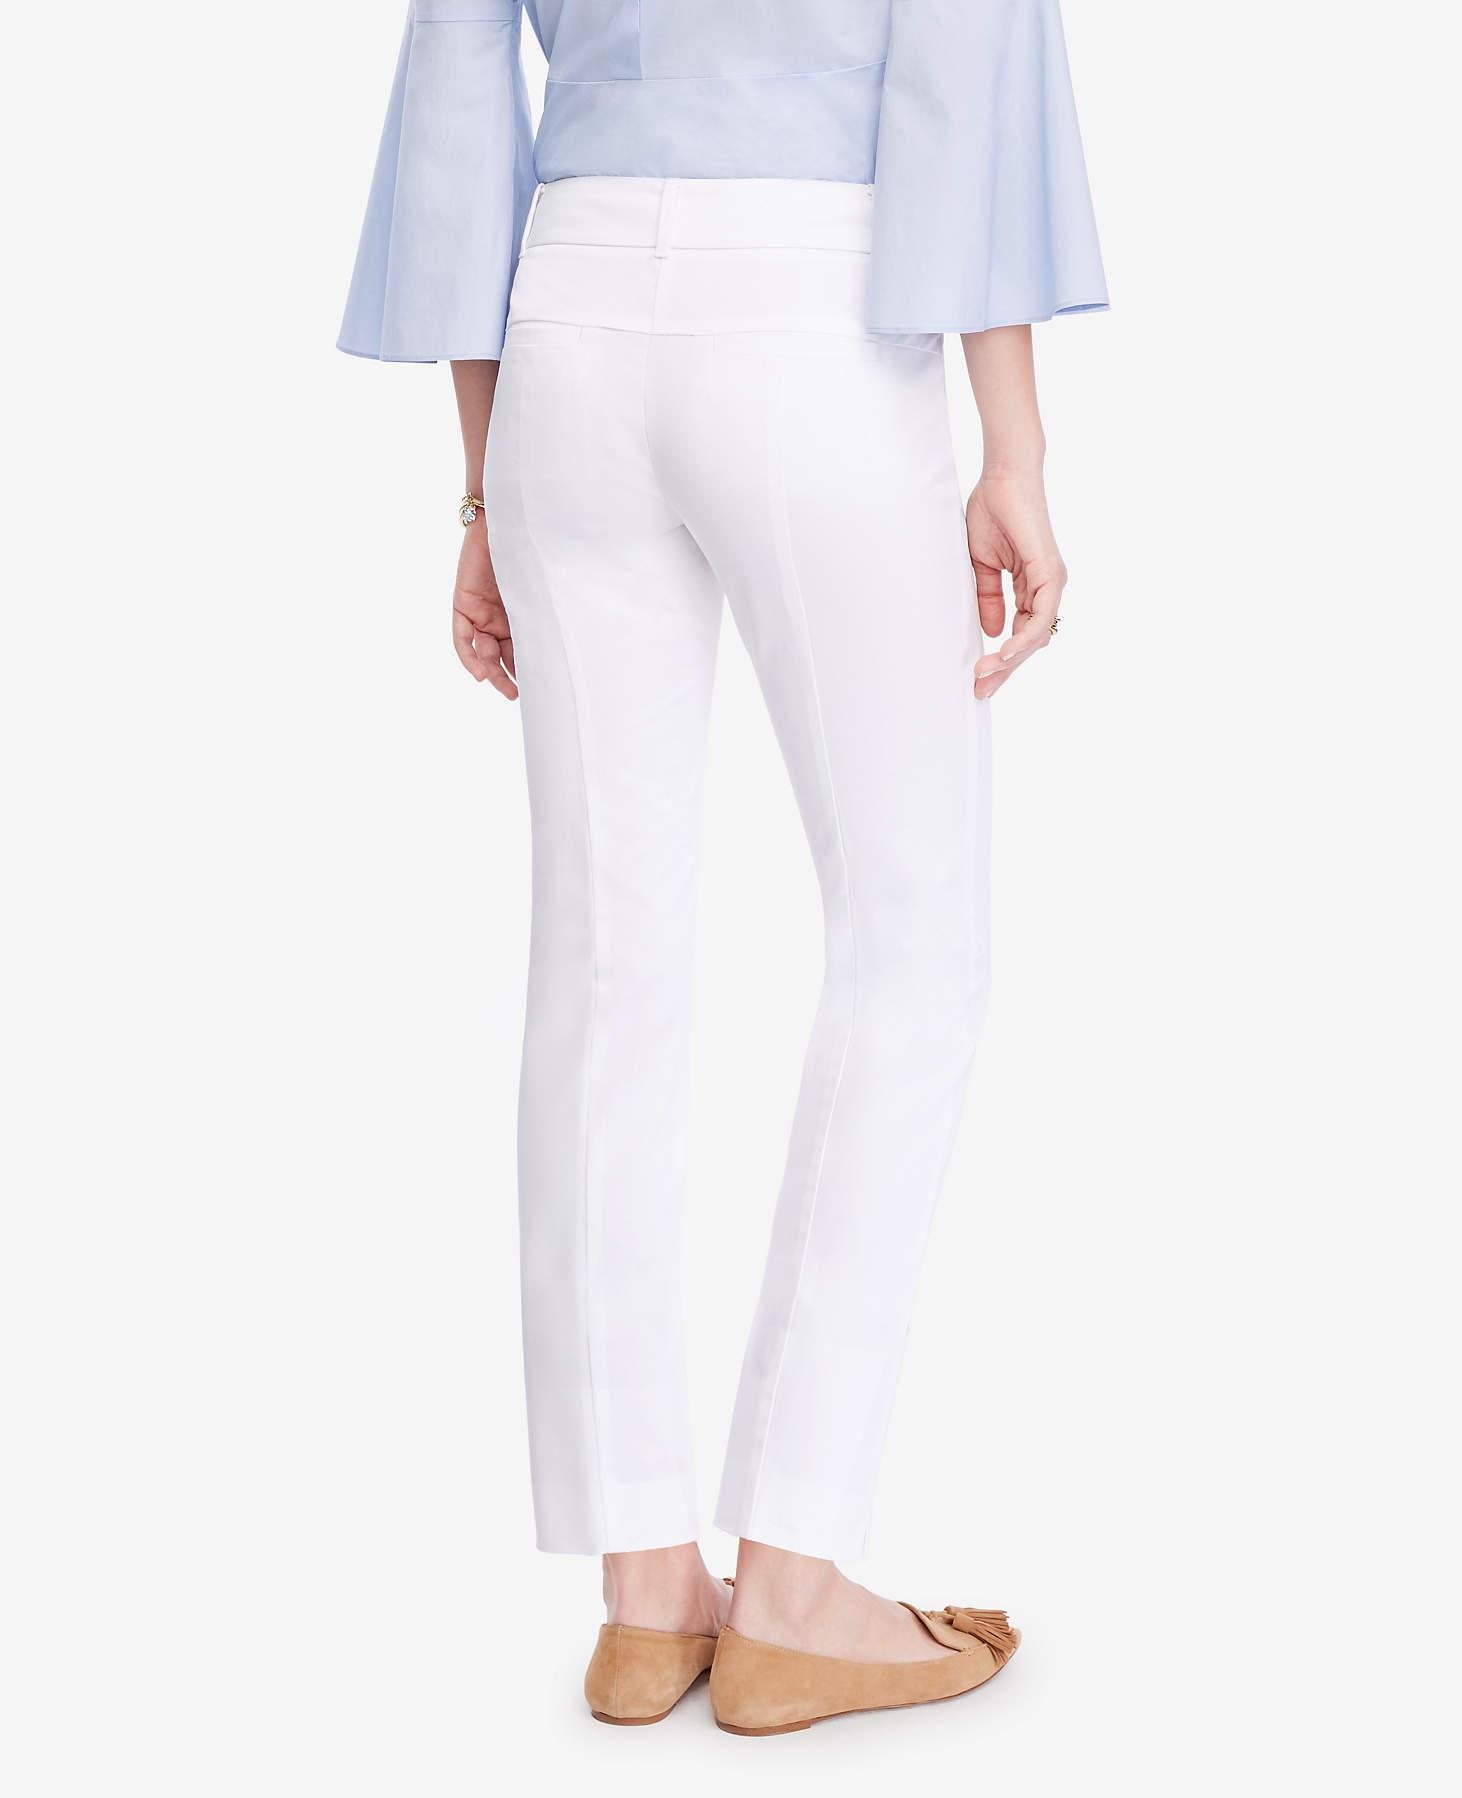 Ann Taylor Cotton The Tall Crop Pant - Devin Fit in White